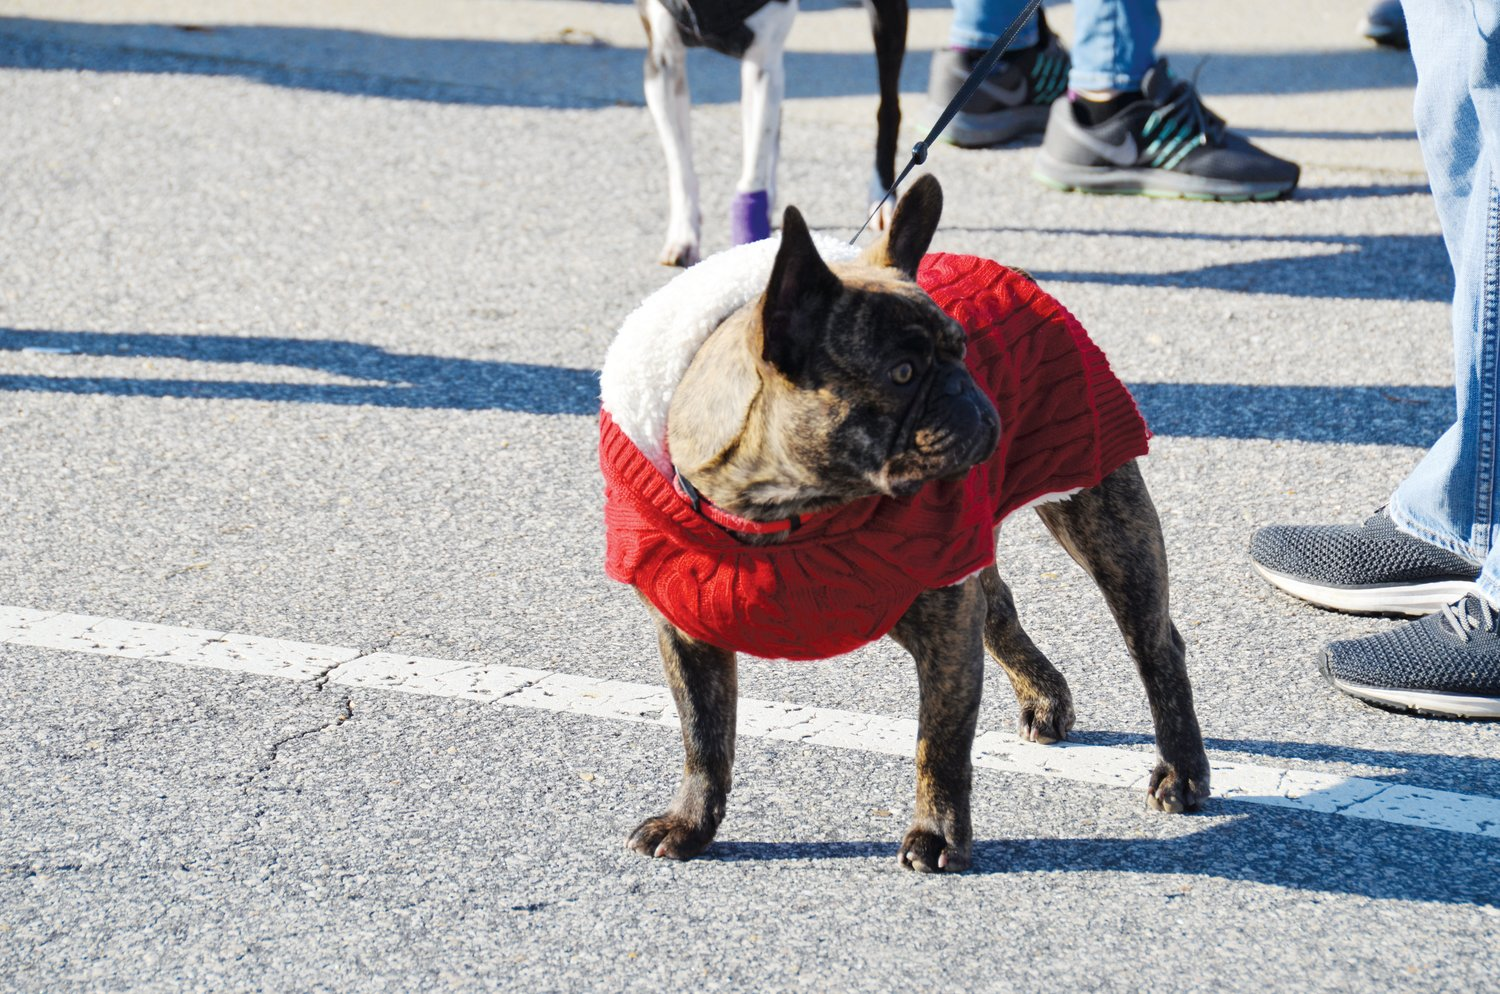 Four-legged parade-goers like Vader, shown here, joined hundreds of attendees for Angier's annual Christmas parade which was held Saturday.